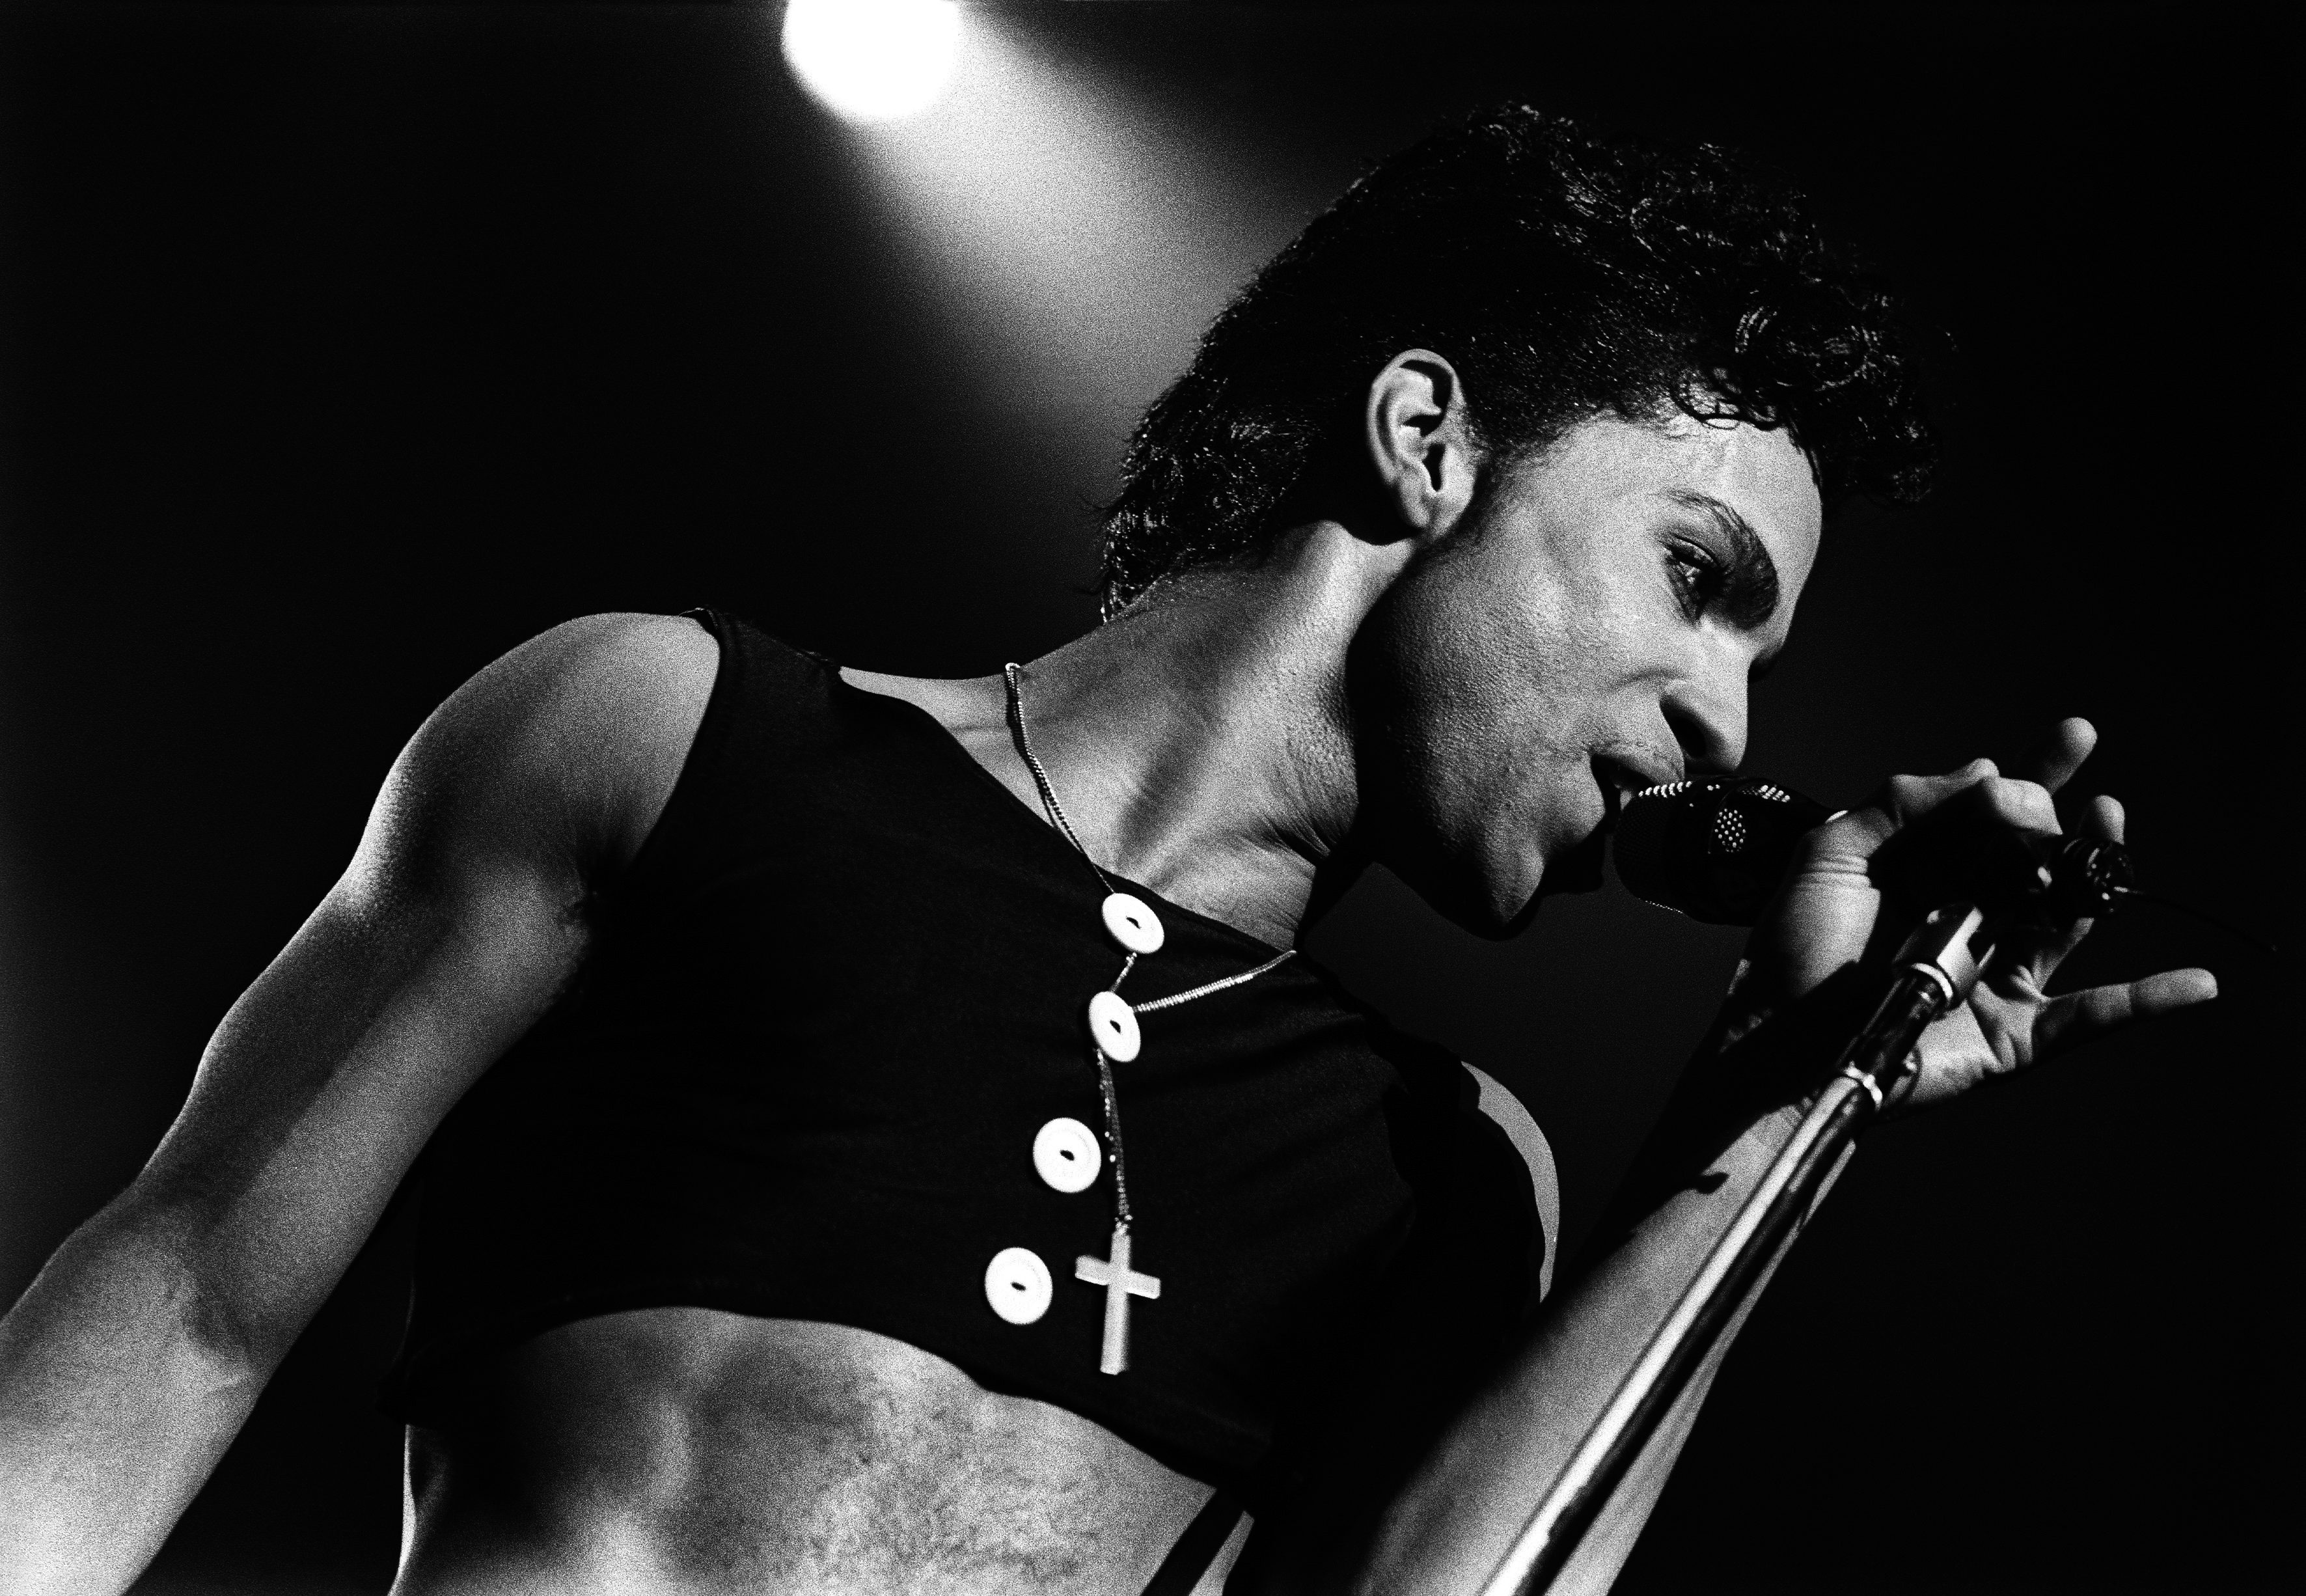 Prince and The Revolution perform on stage at Ahoy, Rotterdam, on Aug. 17,1986.